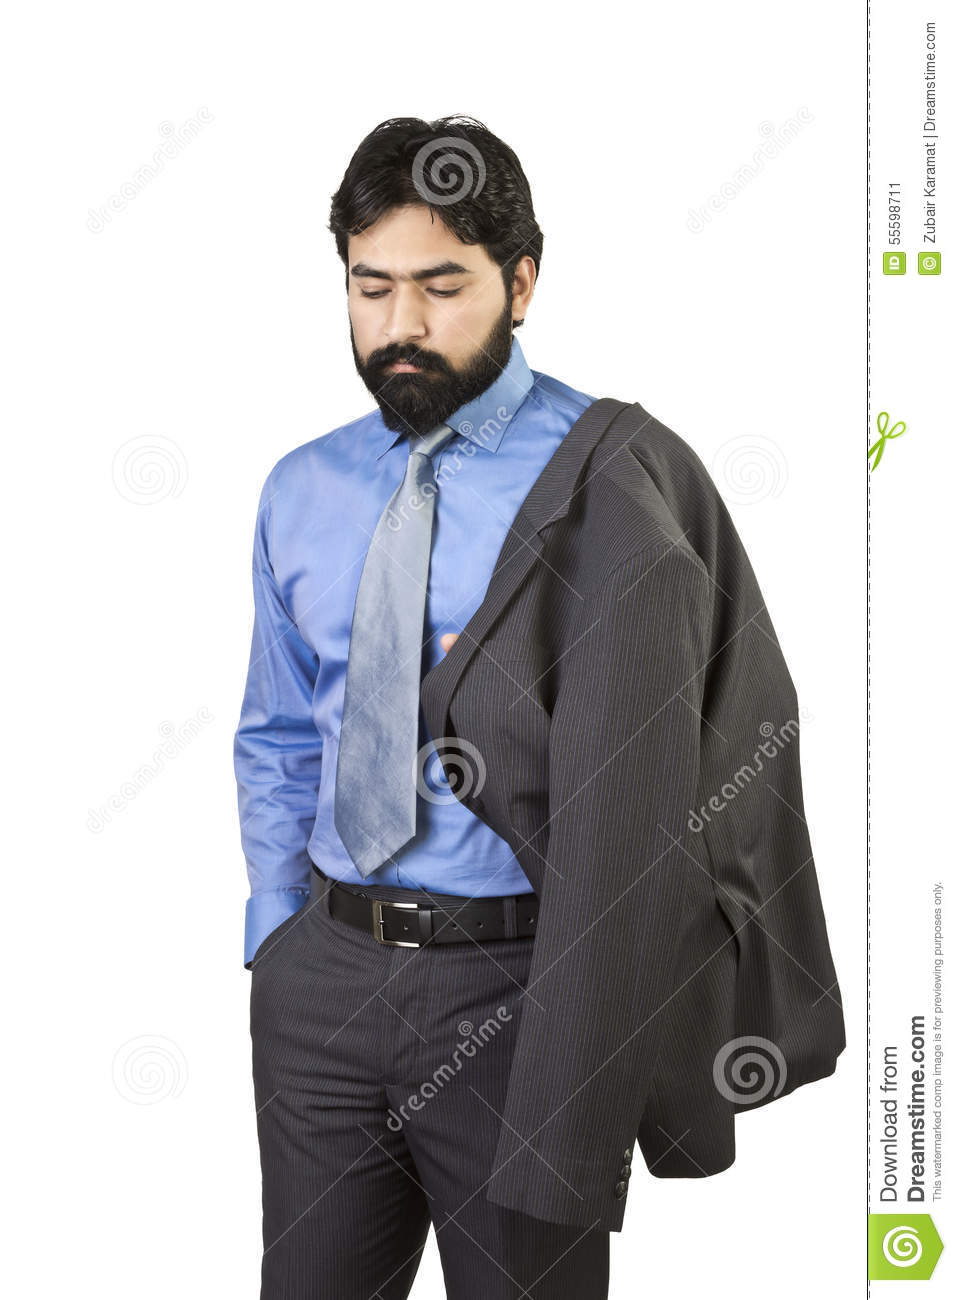 Dejected Young Man After Being Rejected Royalty Free Stock